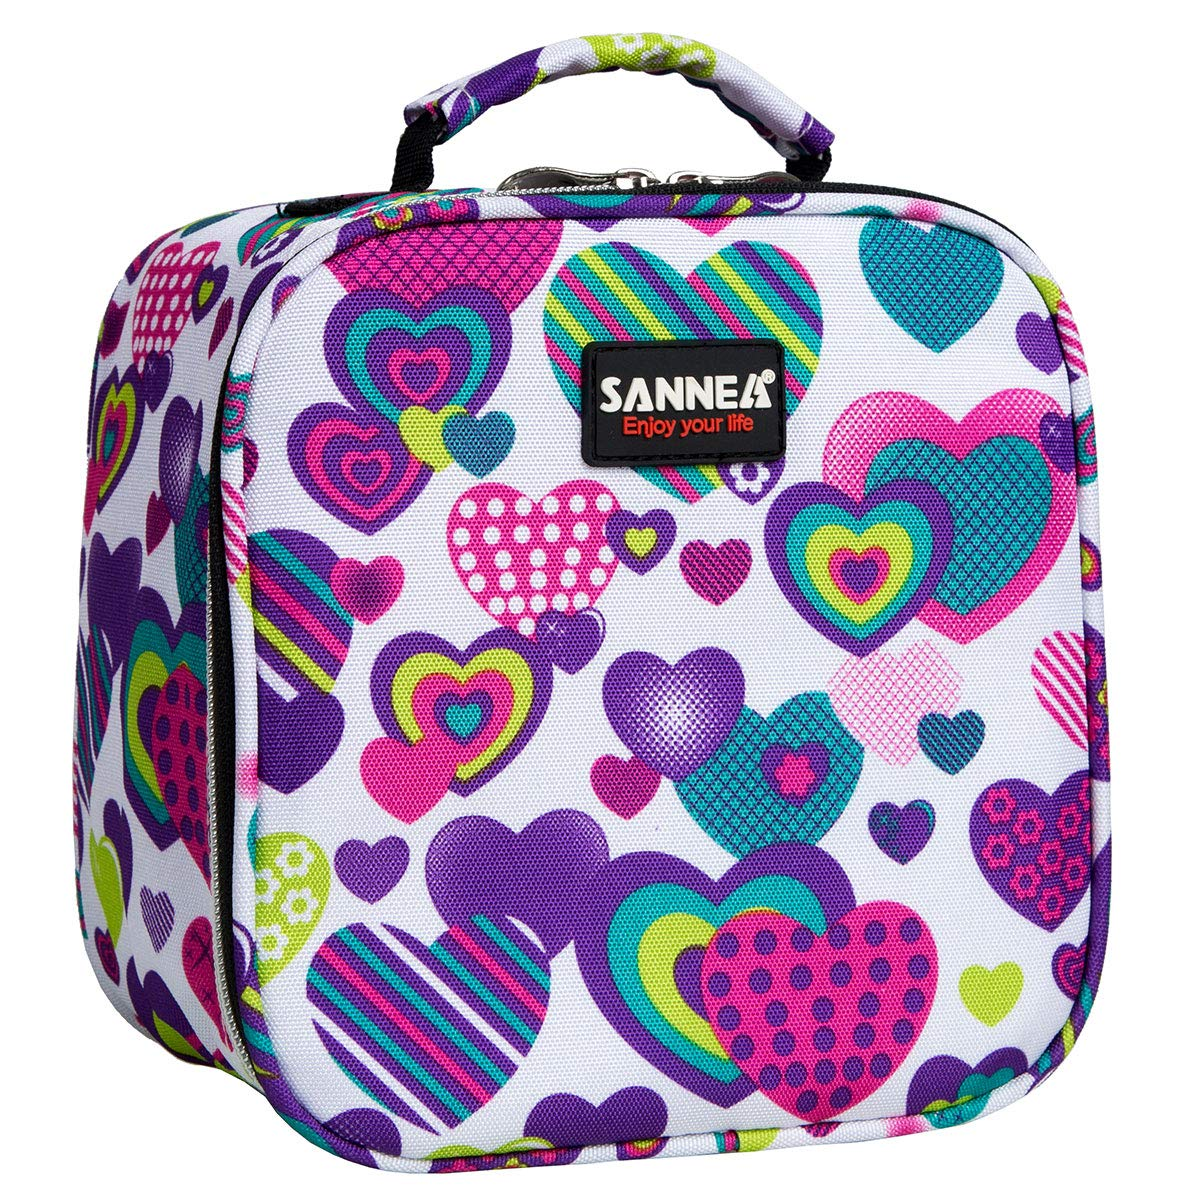 Kids Lunch Bag Insulted Lunch Box Tote Reusable Thermal Lunch Kit for School,Work and Travel Easy to Clean, 4L, Age 6+, Perfect for Kids or On-The-Go Parents